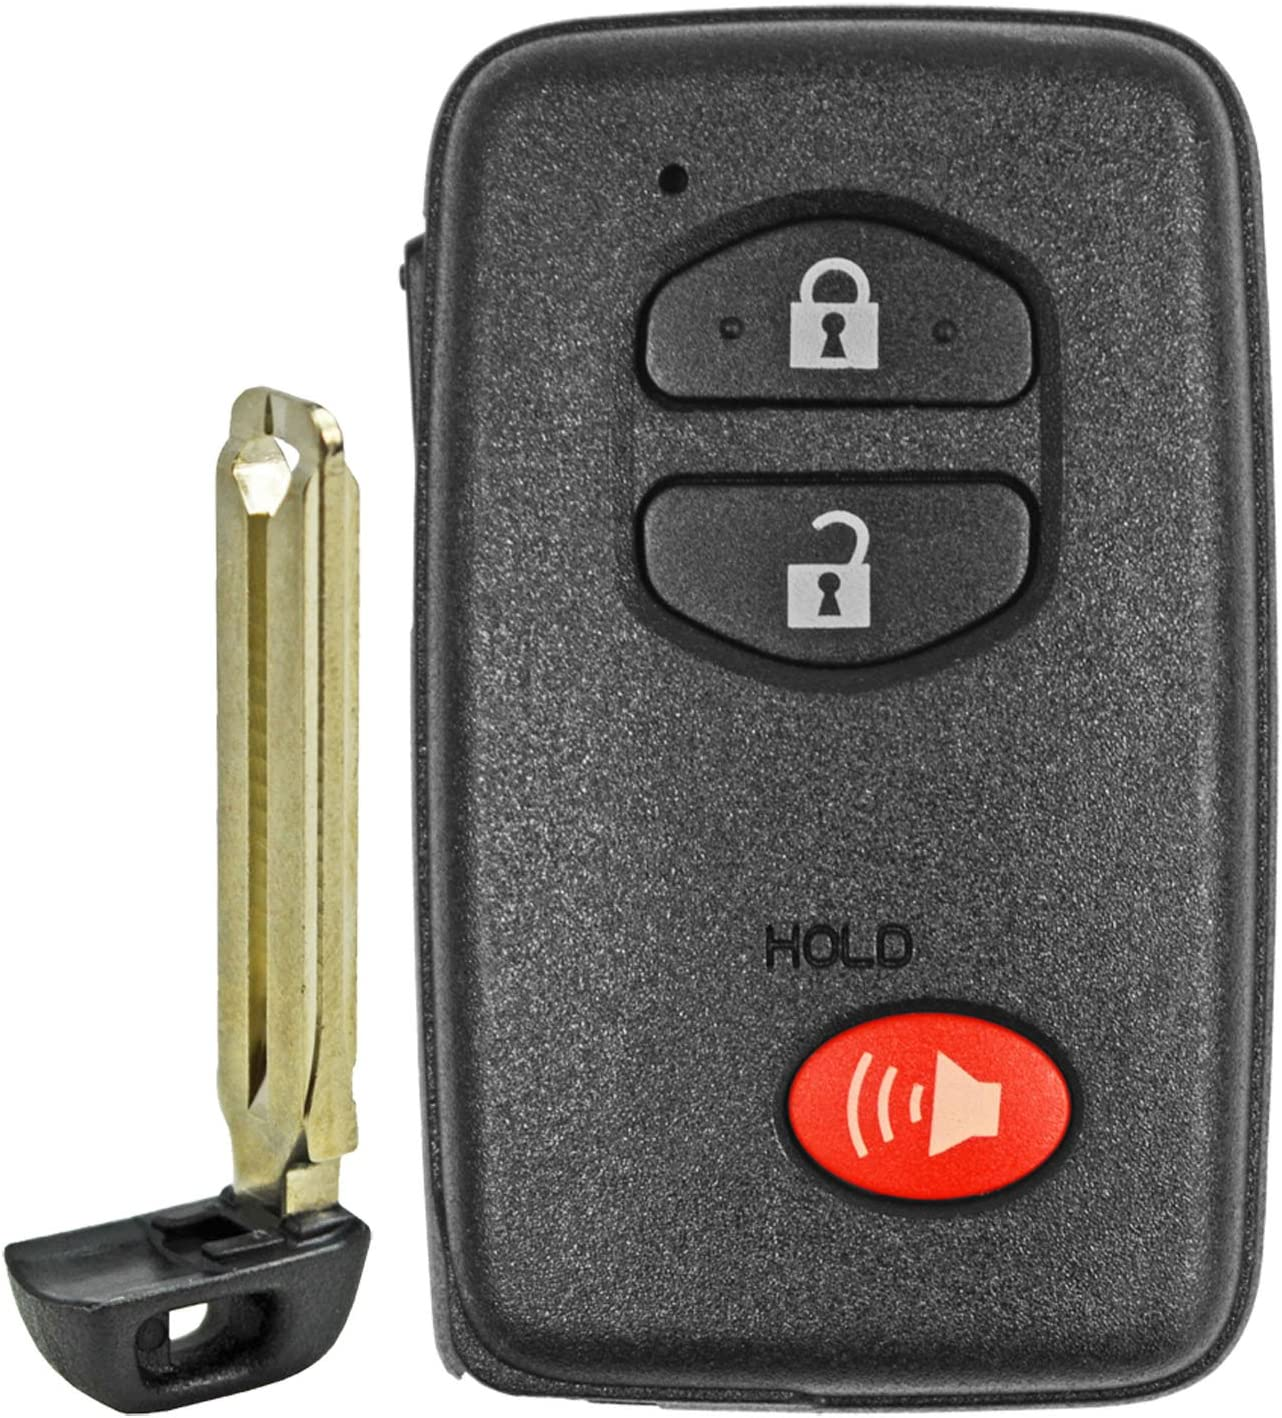 HYQ14AAB E-Board with Keytag Return QualityKeylessPlus Aftermarket Replacement Toyota Prox Smart Key Remote for 2009-2012 Toyota Rav4 and 2011 Toyota Prius Keyless Entry FCC ID